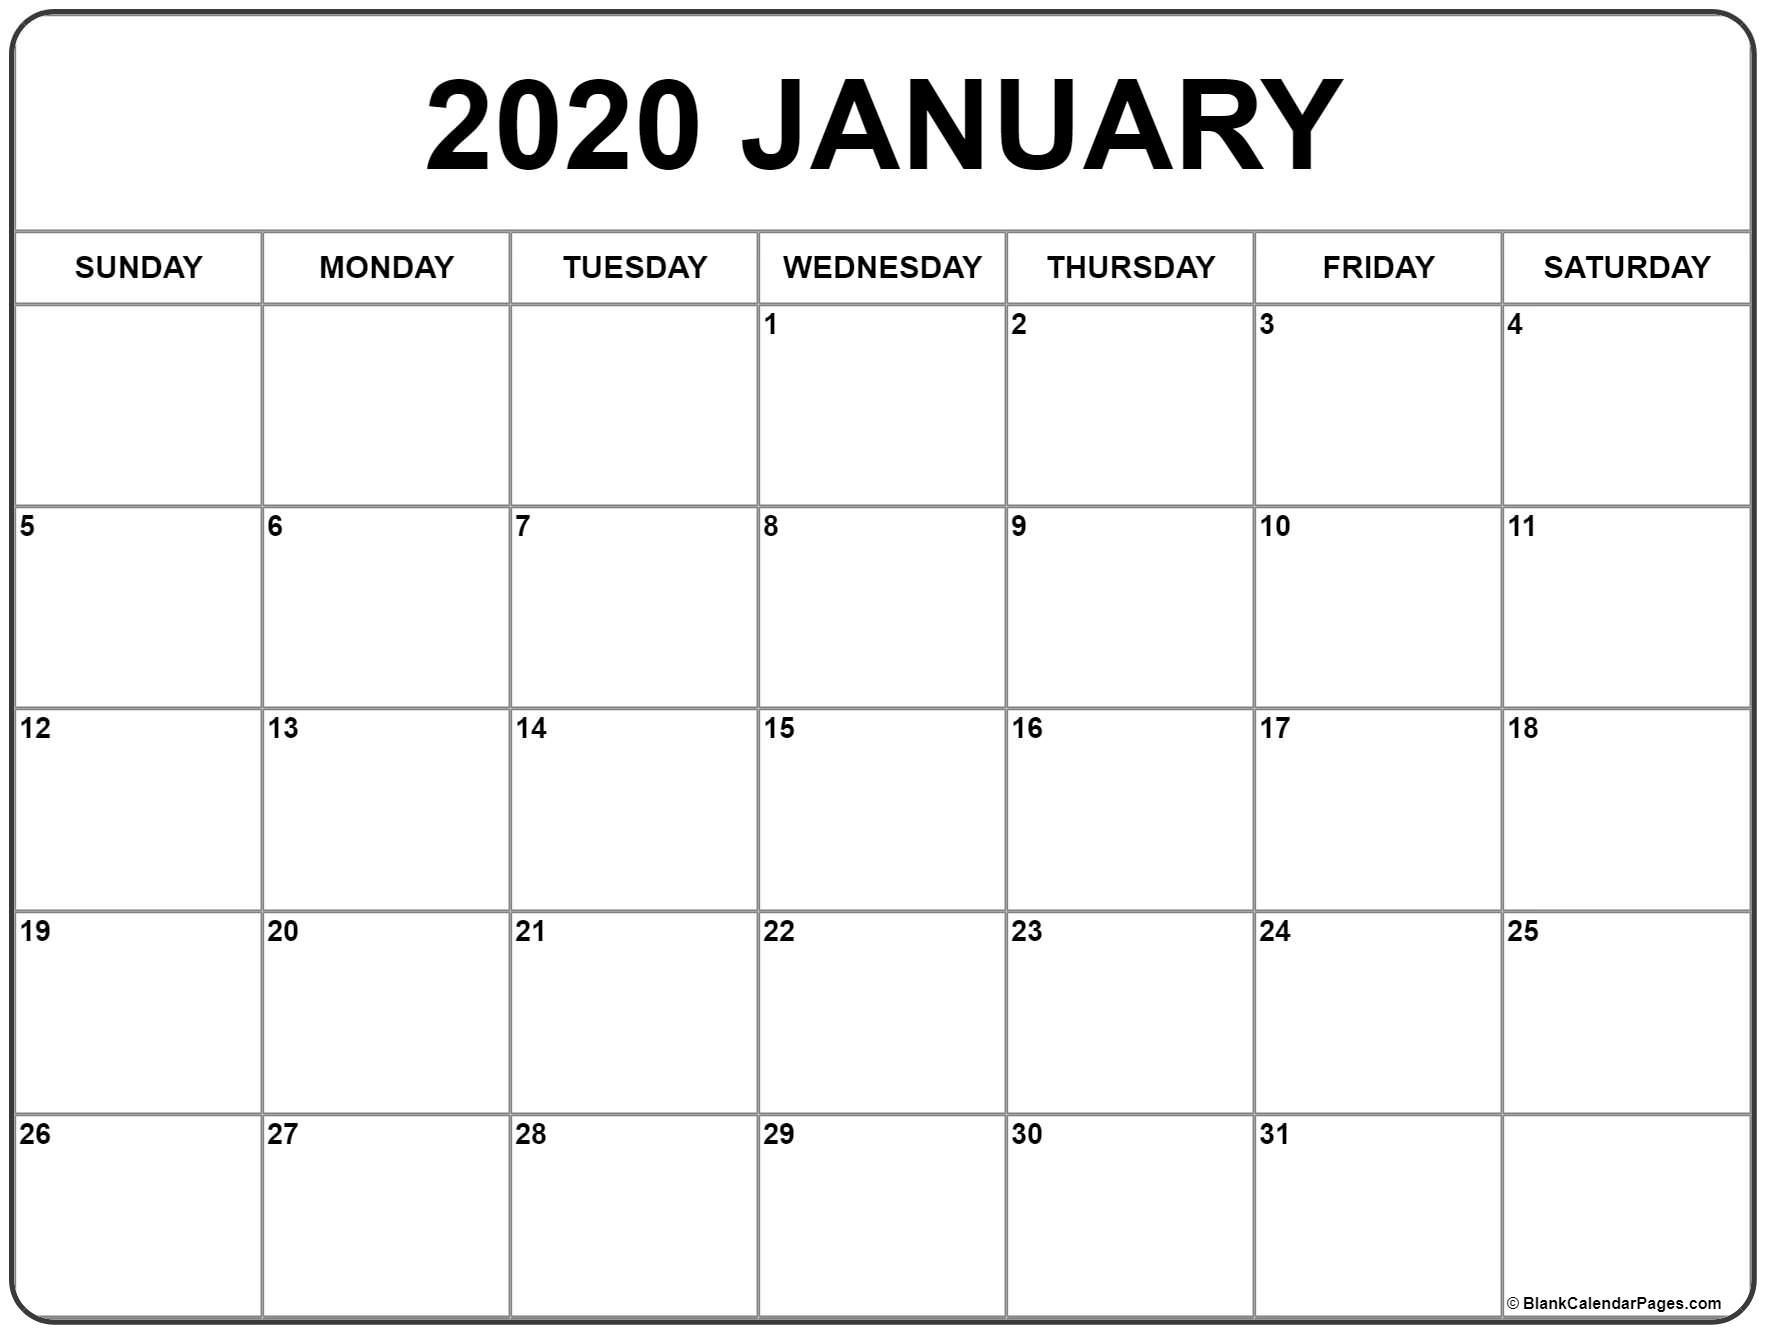 January 2020 Calendar | Free Printable Monthly Calendars  Printable Calendar 2020